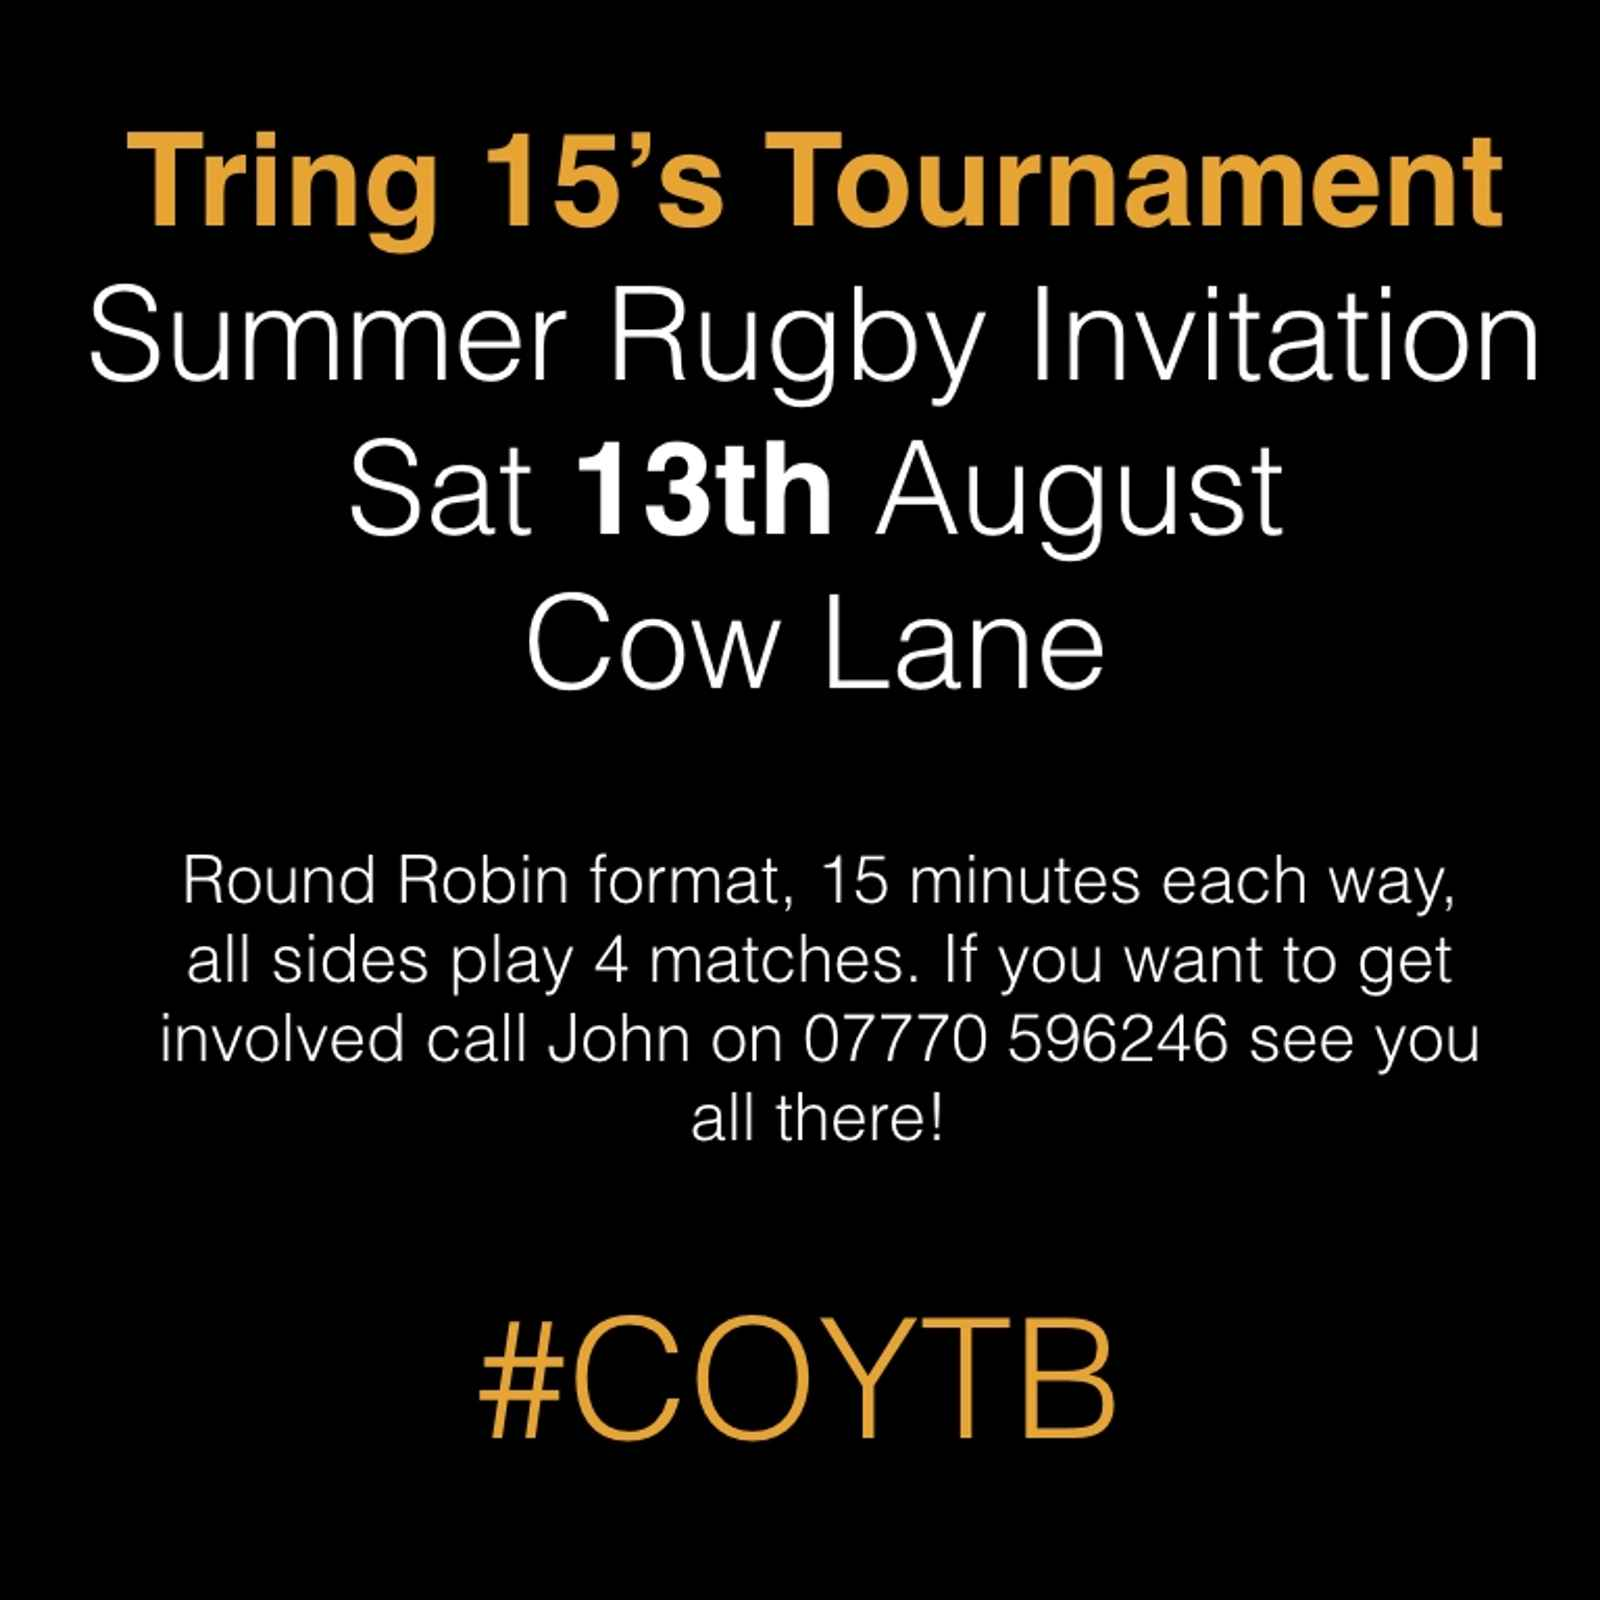 Tring 15's Summer tournament is on! - Saturday August 13th 2016